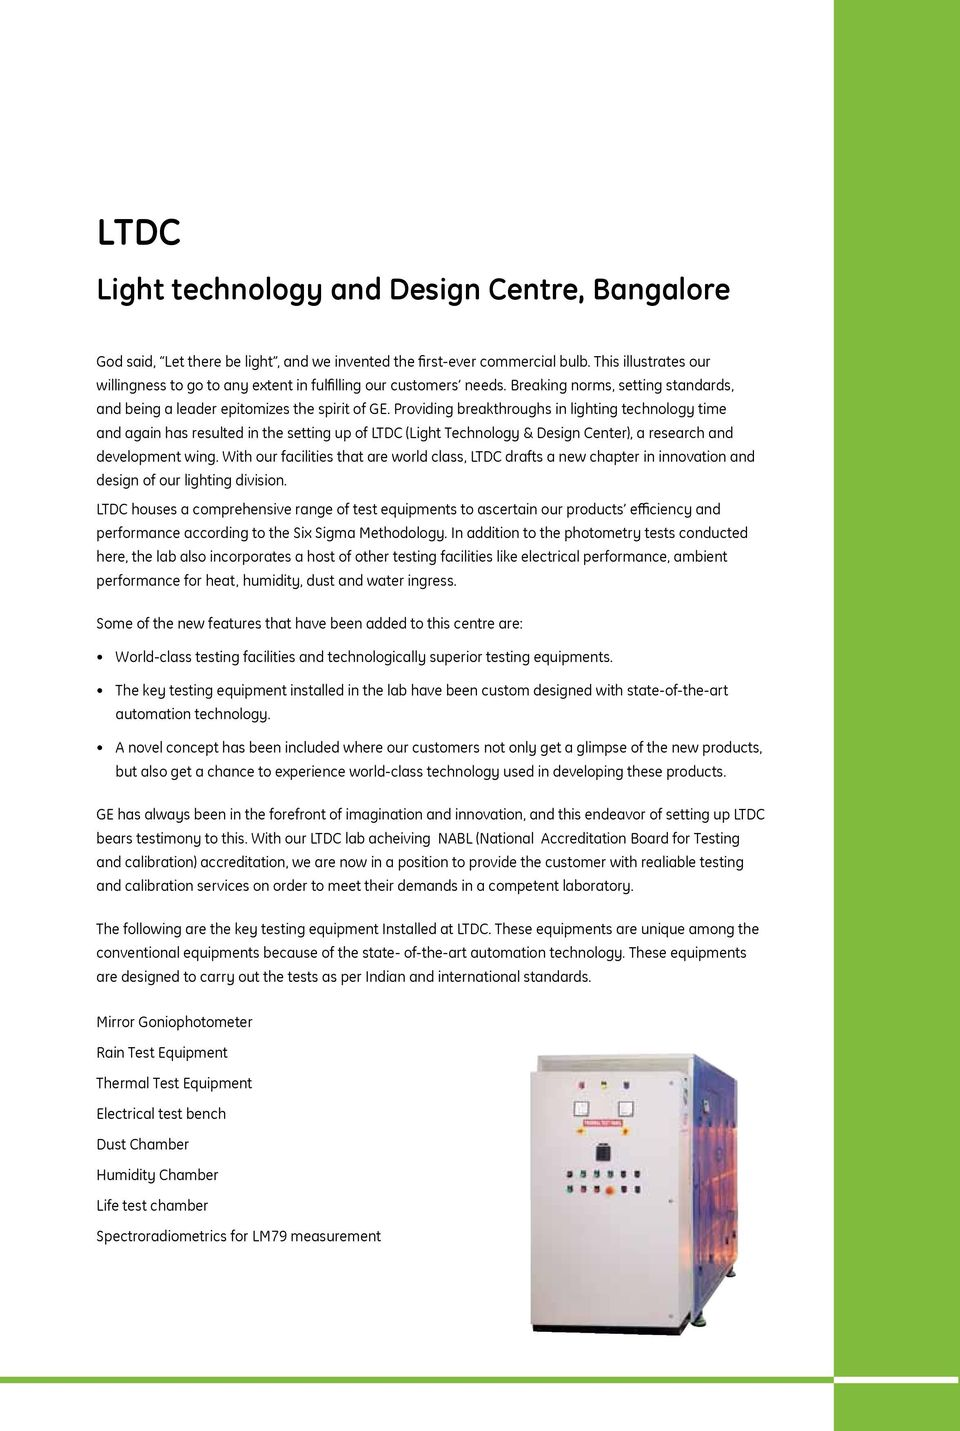 Providing breakthroughs in lighting technology time and again has resulted in the setting up of LTDC (Light Technology & Design Center), a research and development wing.